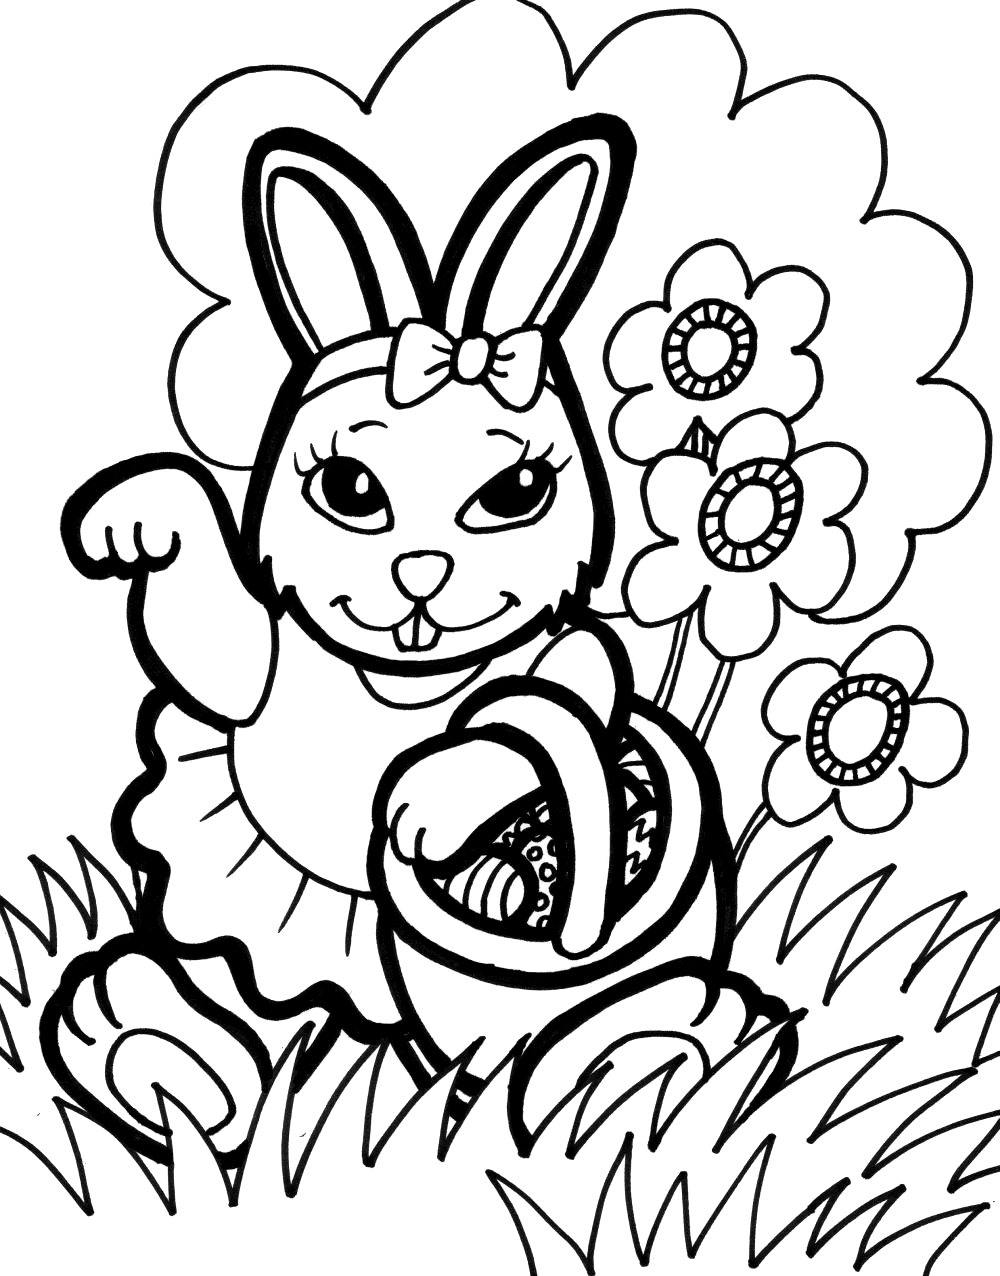 coloring pages bunny bunny coloring pages best coloring pages for kids pages bunny coloring